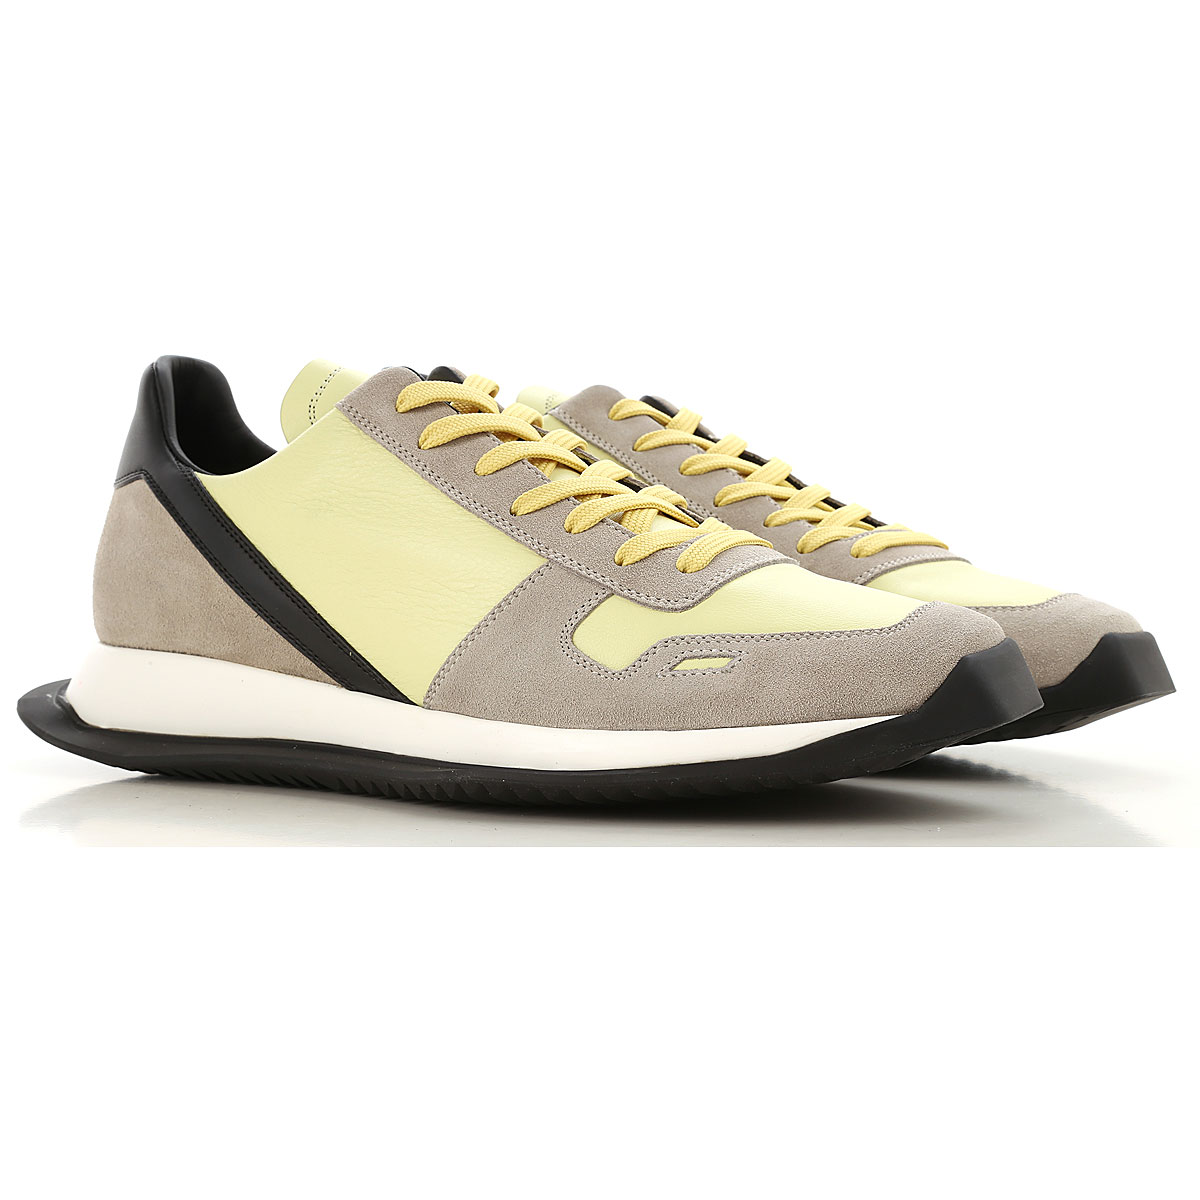 Rick Owens Sneakers for Men in Outlet Lime USA - GOOFASH